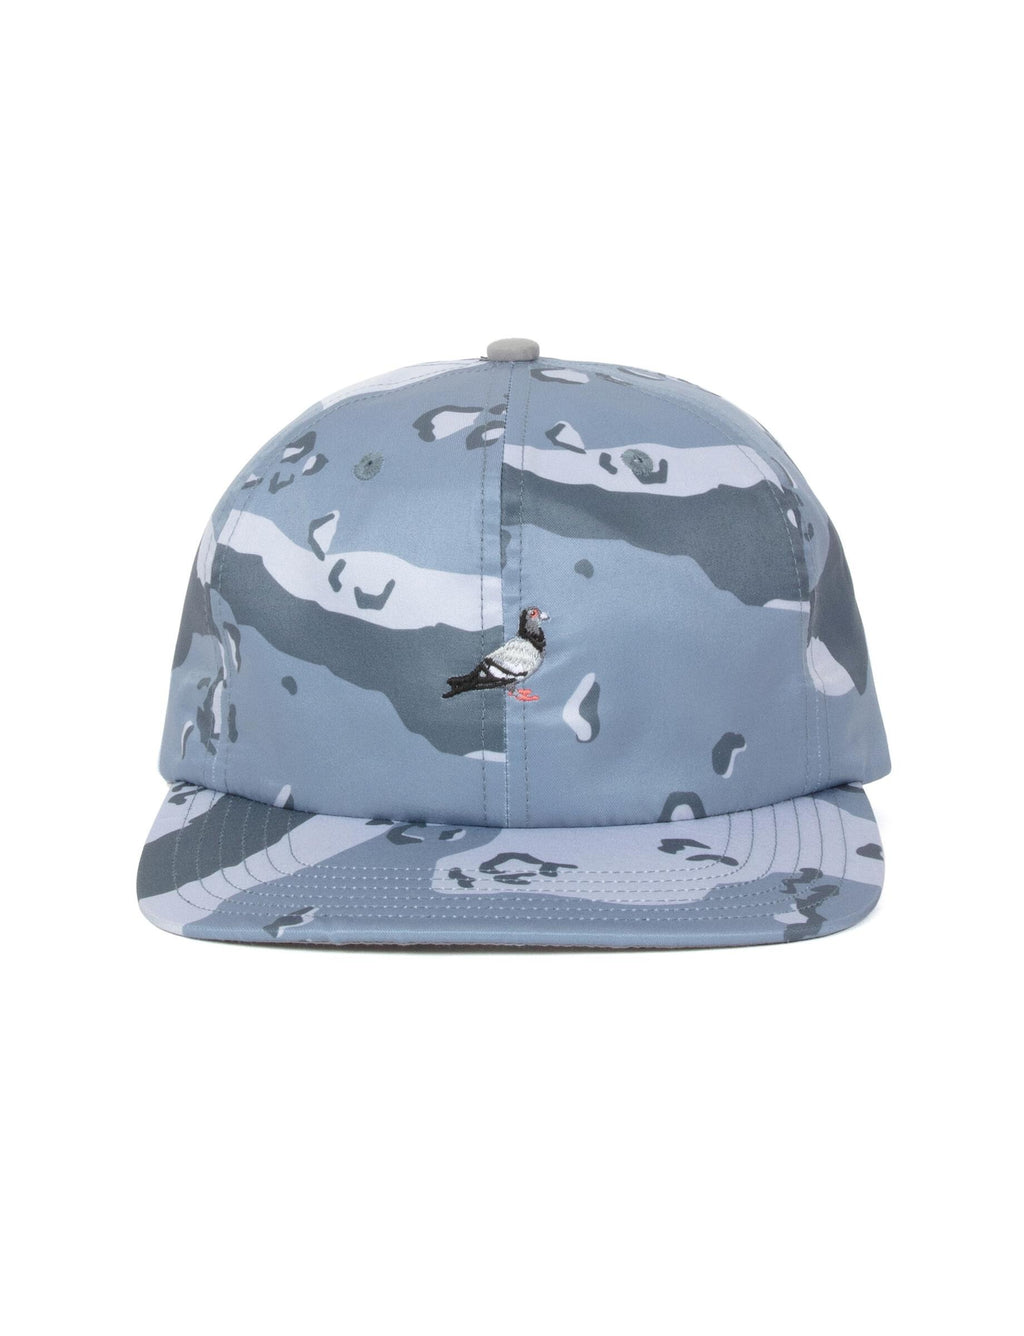 Camo Baseball Cap - Hat | Staple Pigeon